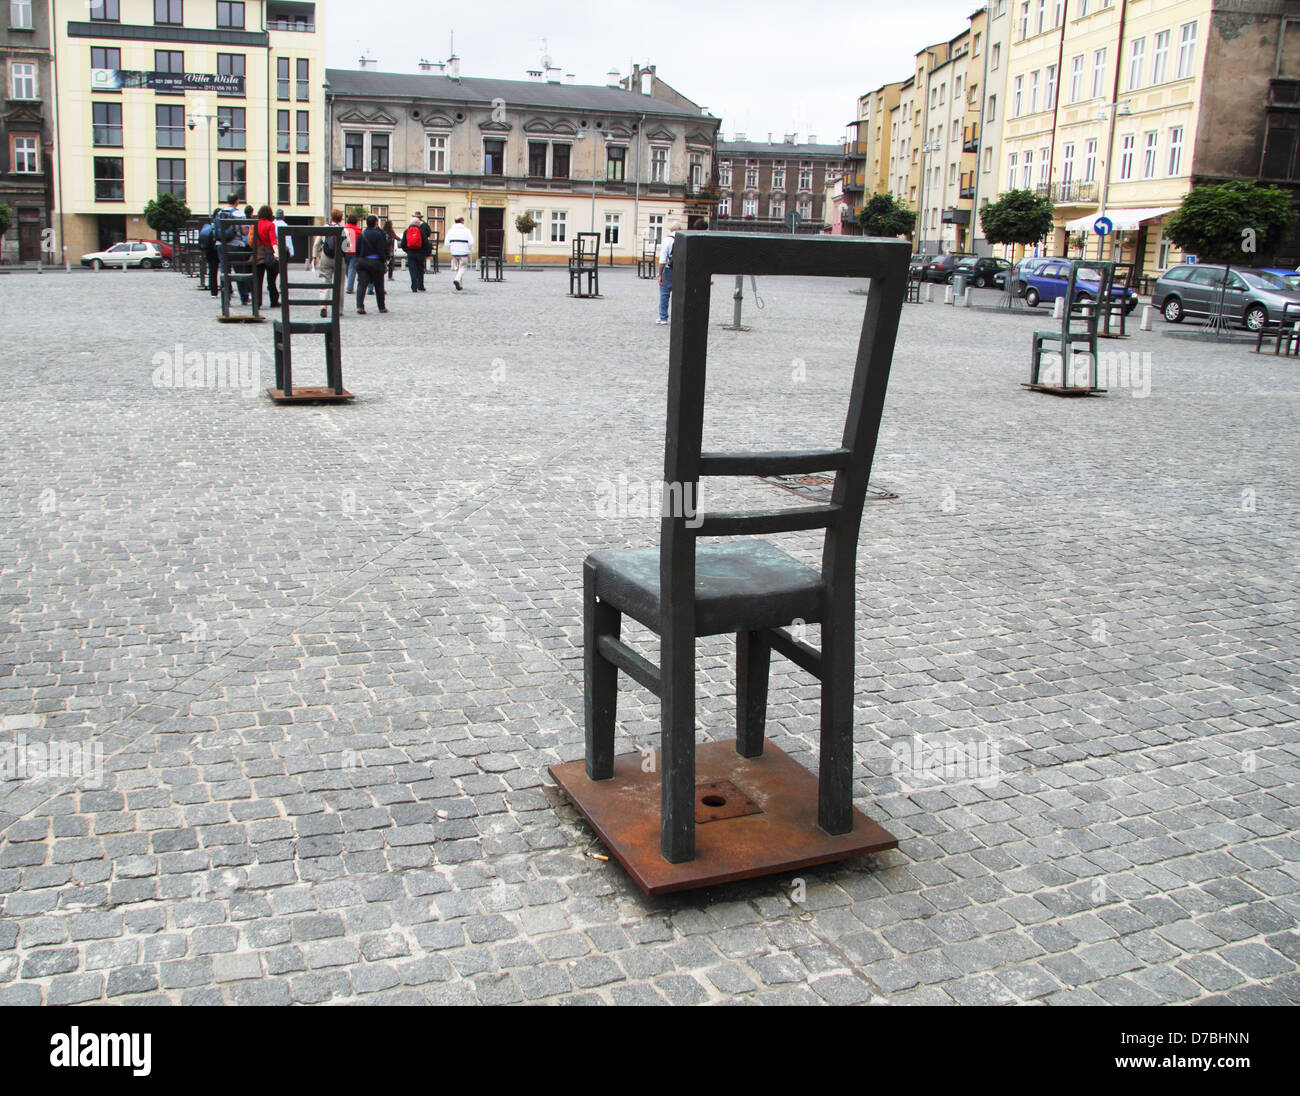 Monumental metal chairs at Zgody Sq. memorializing the victims of Krakow ghetto, Poland - Stock Image